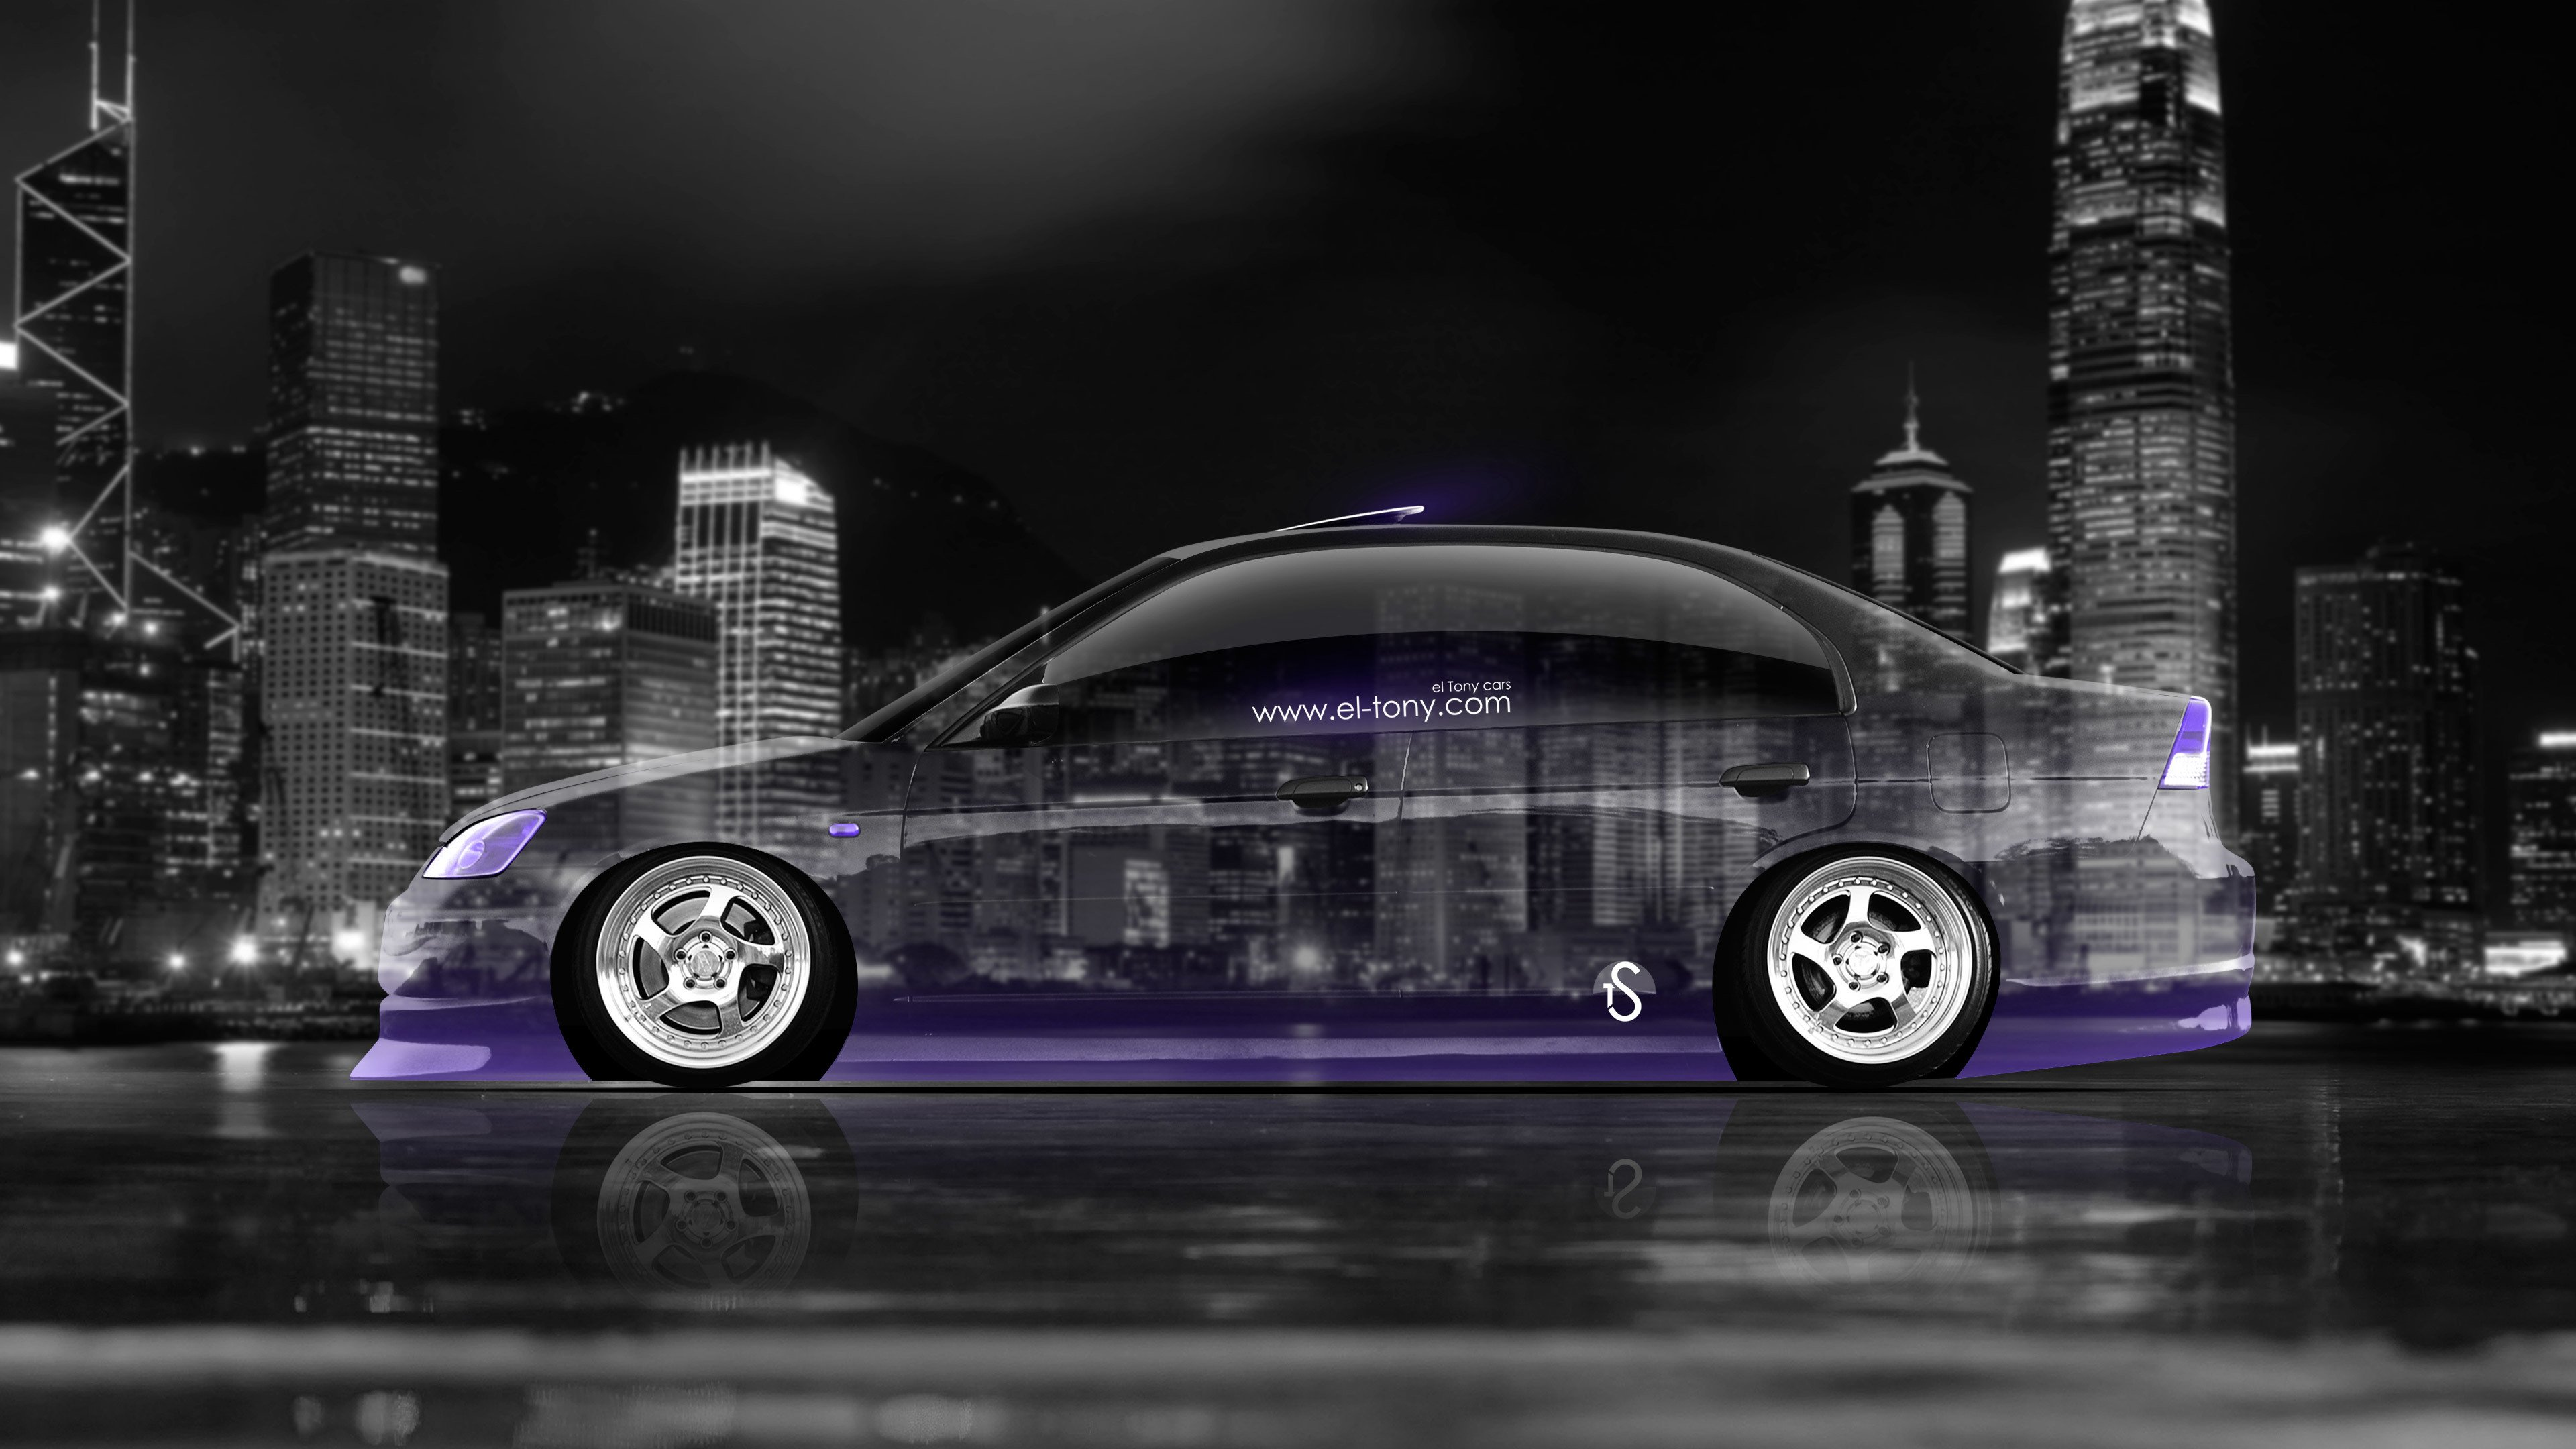 Jdm Crystal City Car Violet Neon 4k Wallpapers Style Download 3840x2160